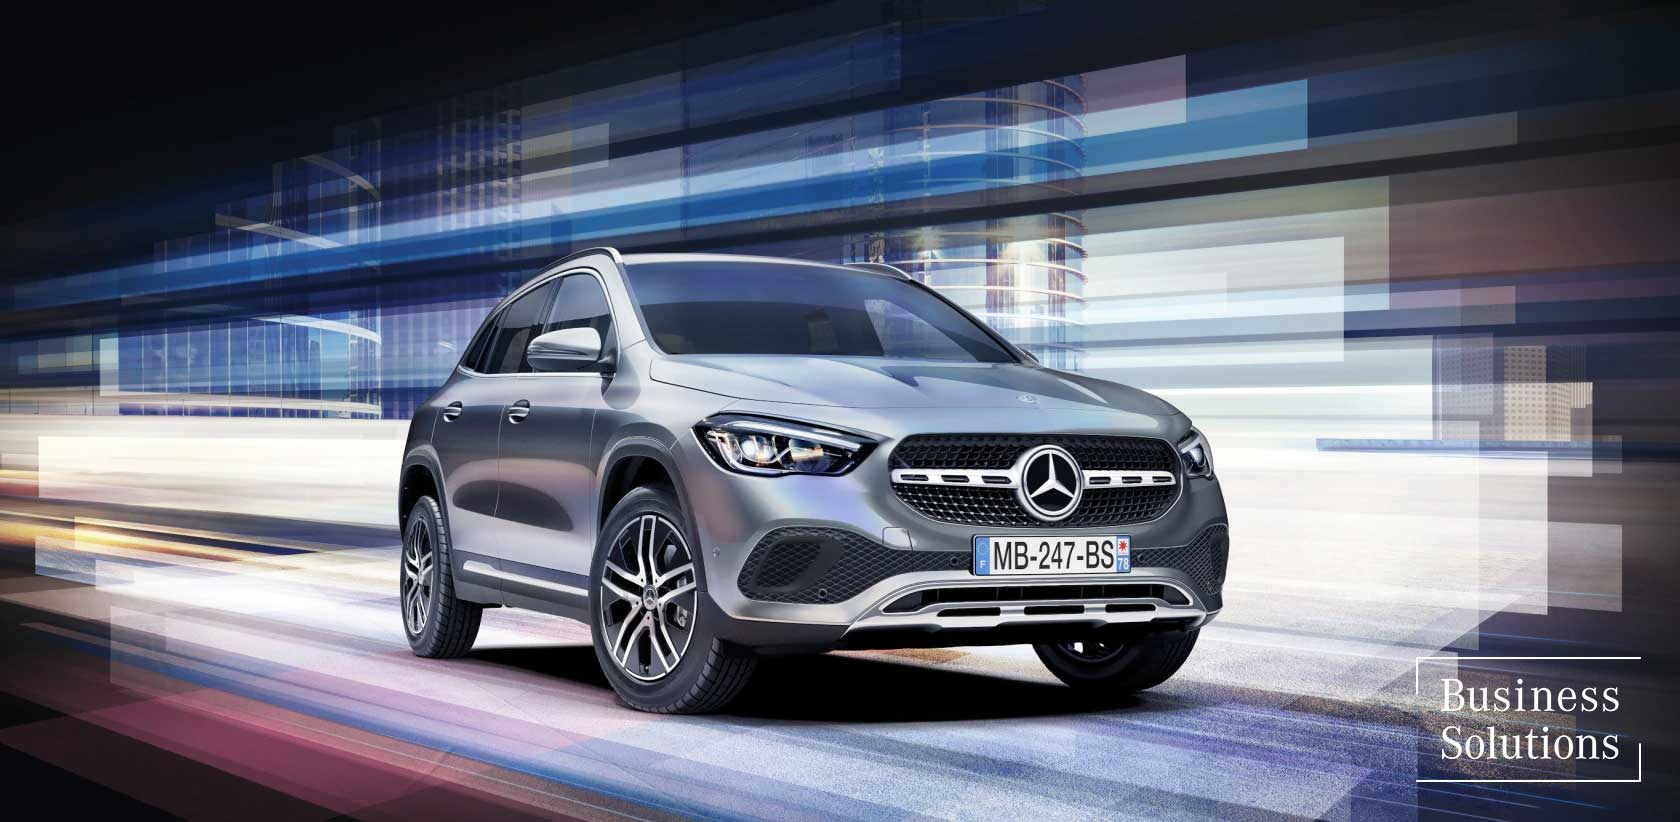 mercedes-benz gla business solutions